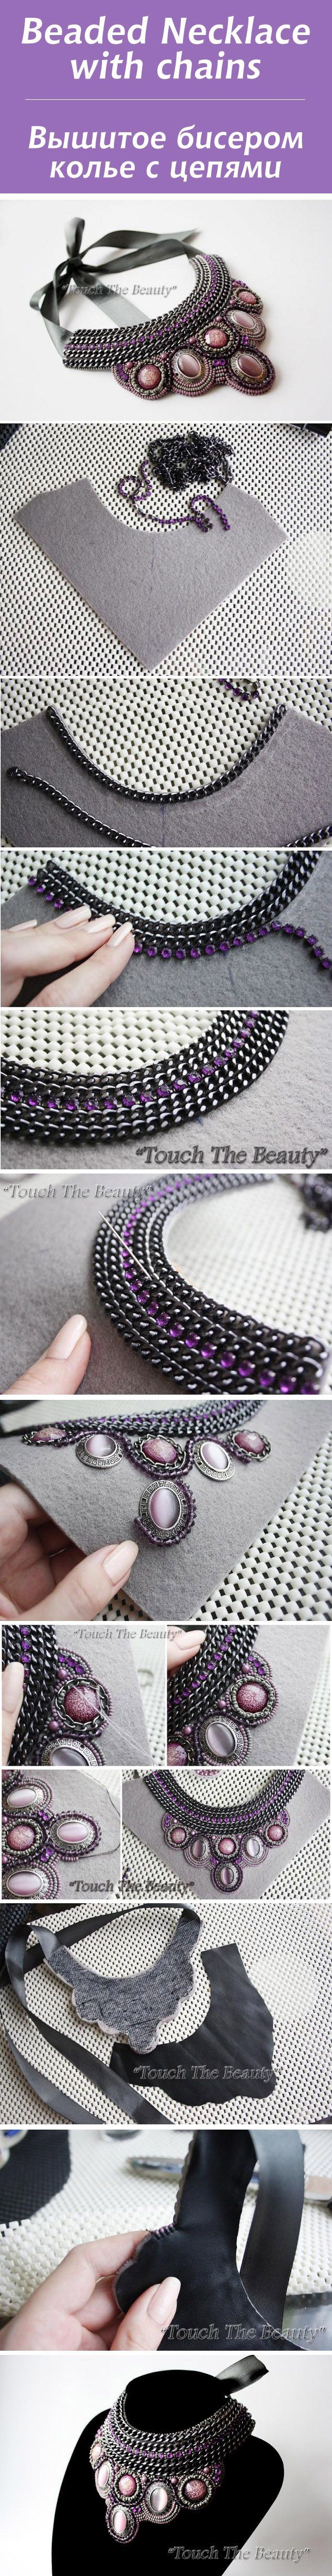 DIY Bib Necklace | This tutorial shows you how to make your own bib necklace. See here for my version of a DIY bib necklace using fabric flowers: http://www.sewinlove.com.au/2010/07/06/ribbons-roses-beads-flowers-bib-necklace/